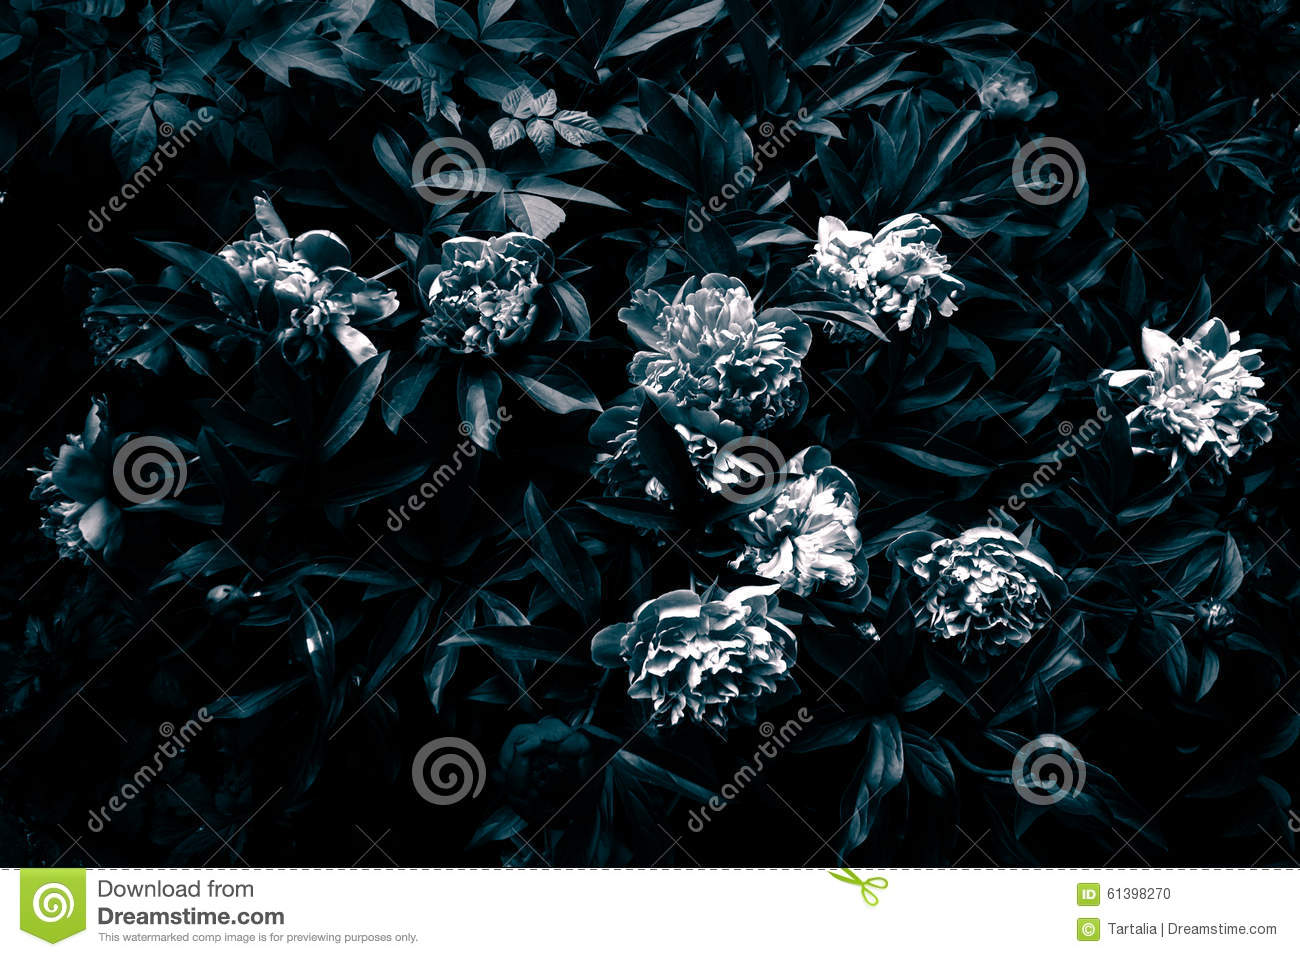 Gloomy peony in black and white stock photo image of florals download gloomy peony in black and white stock photo image of florals somber m4hsunfo